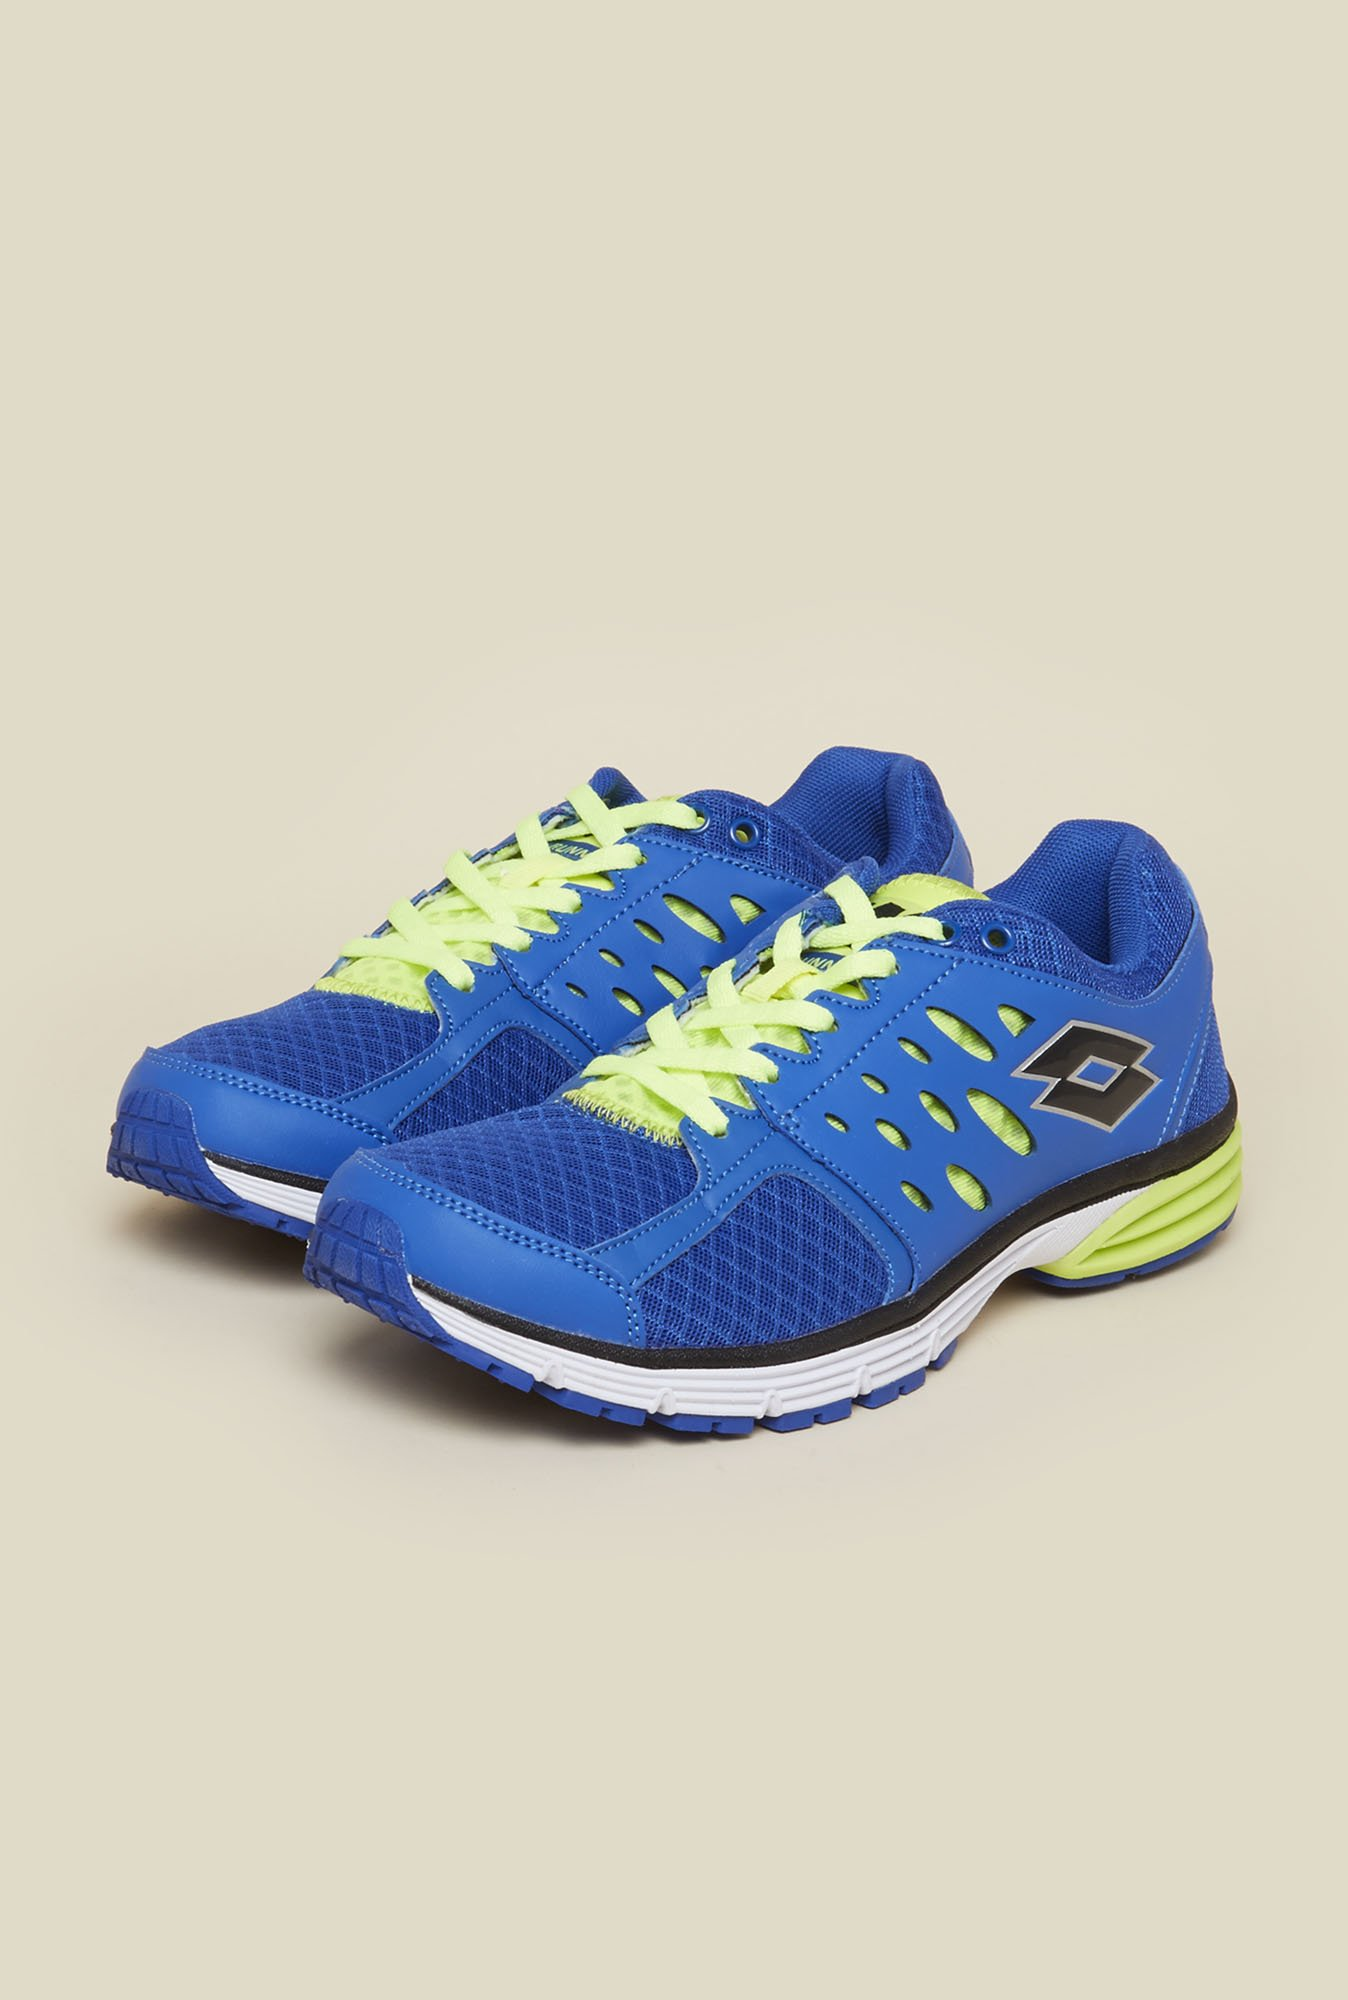 Lotto Santiago II Blue & Lime Green Running Shoes